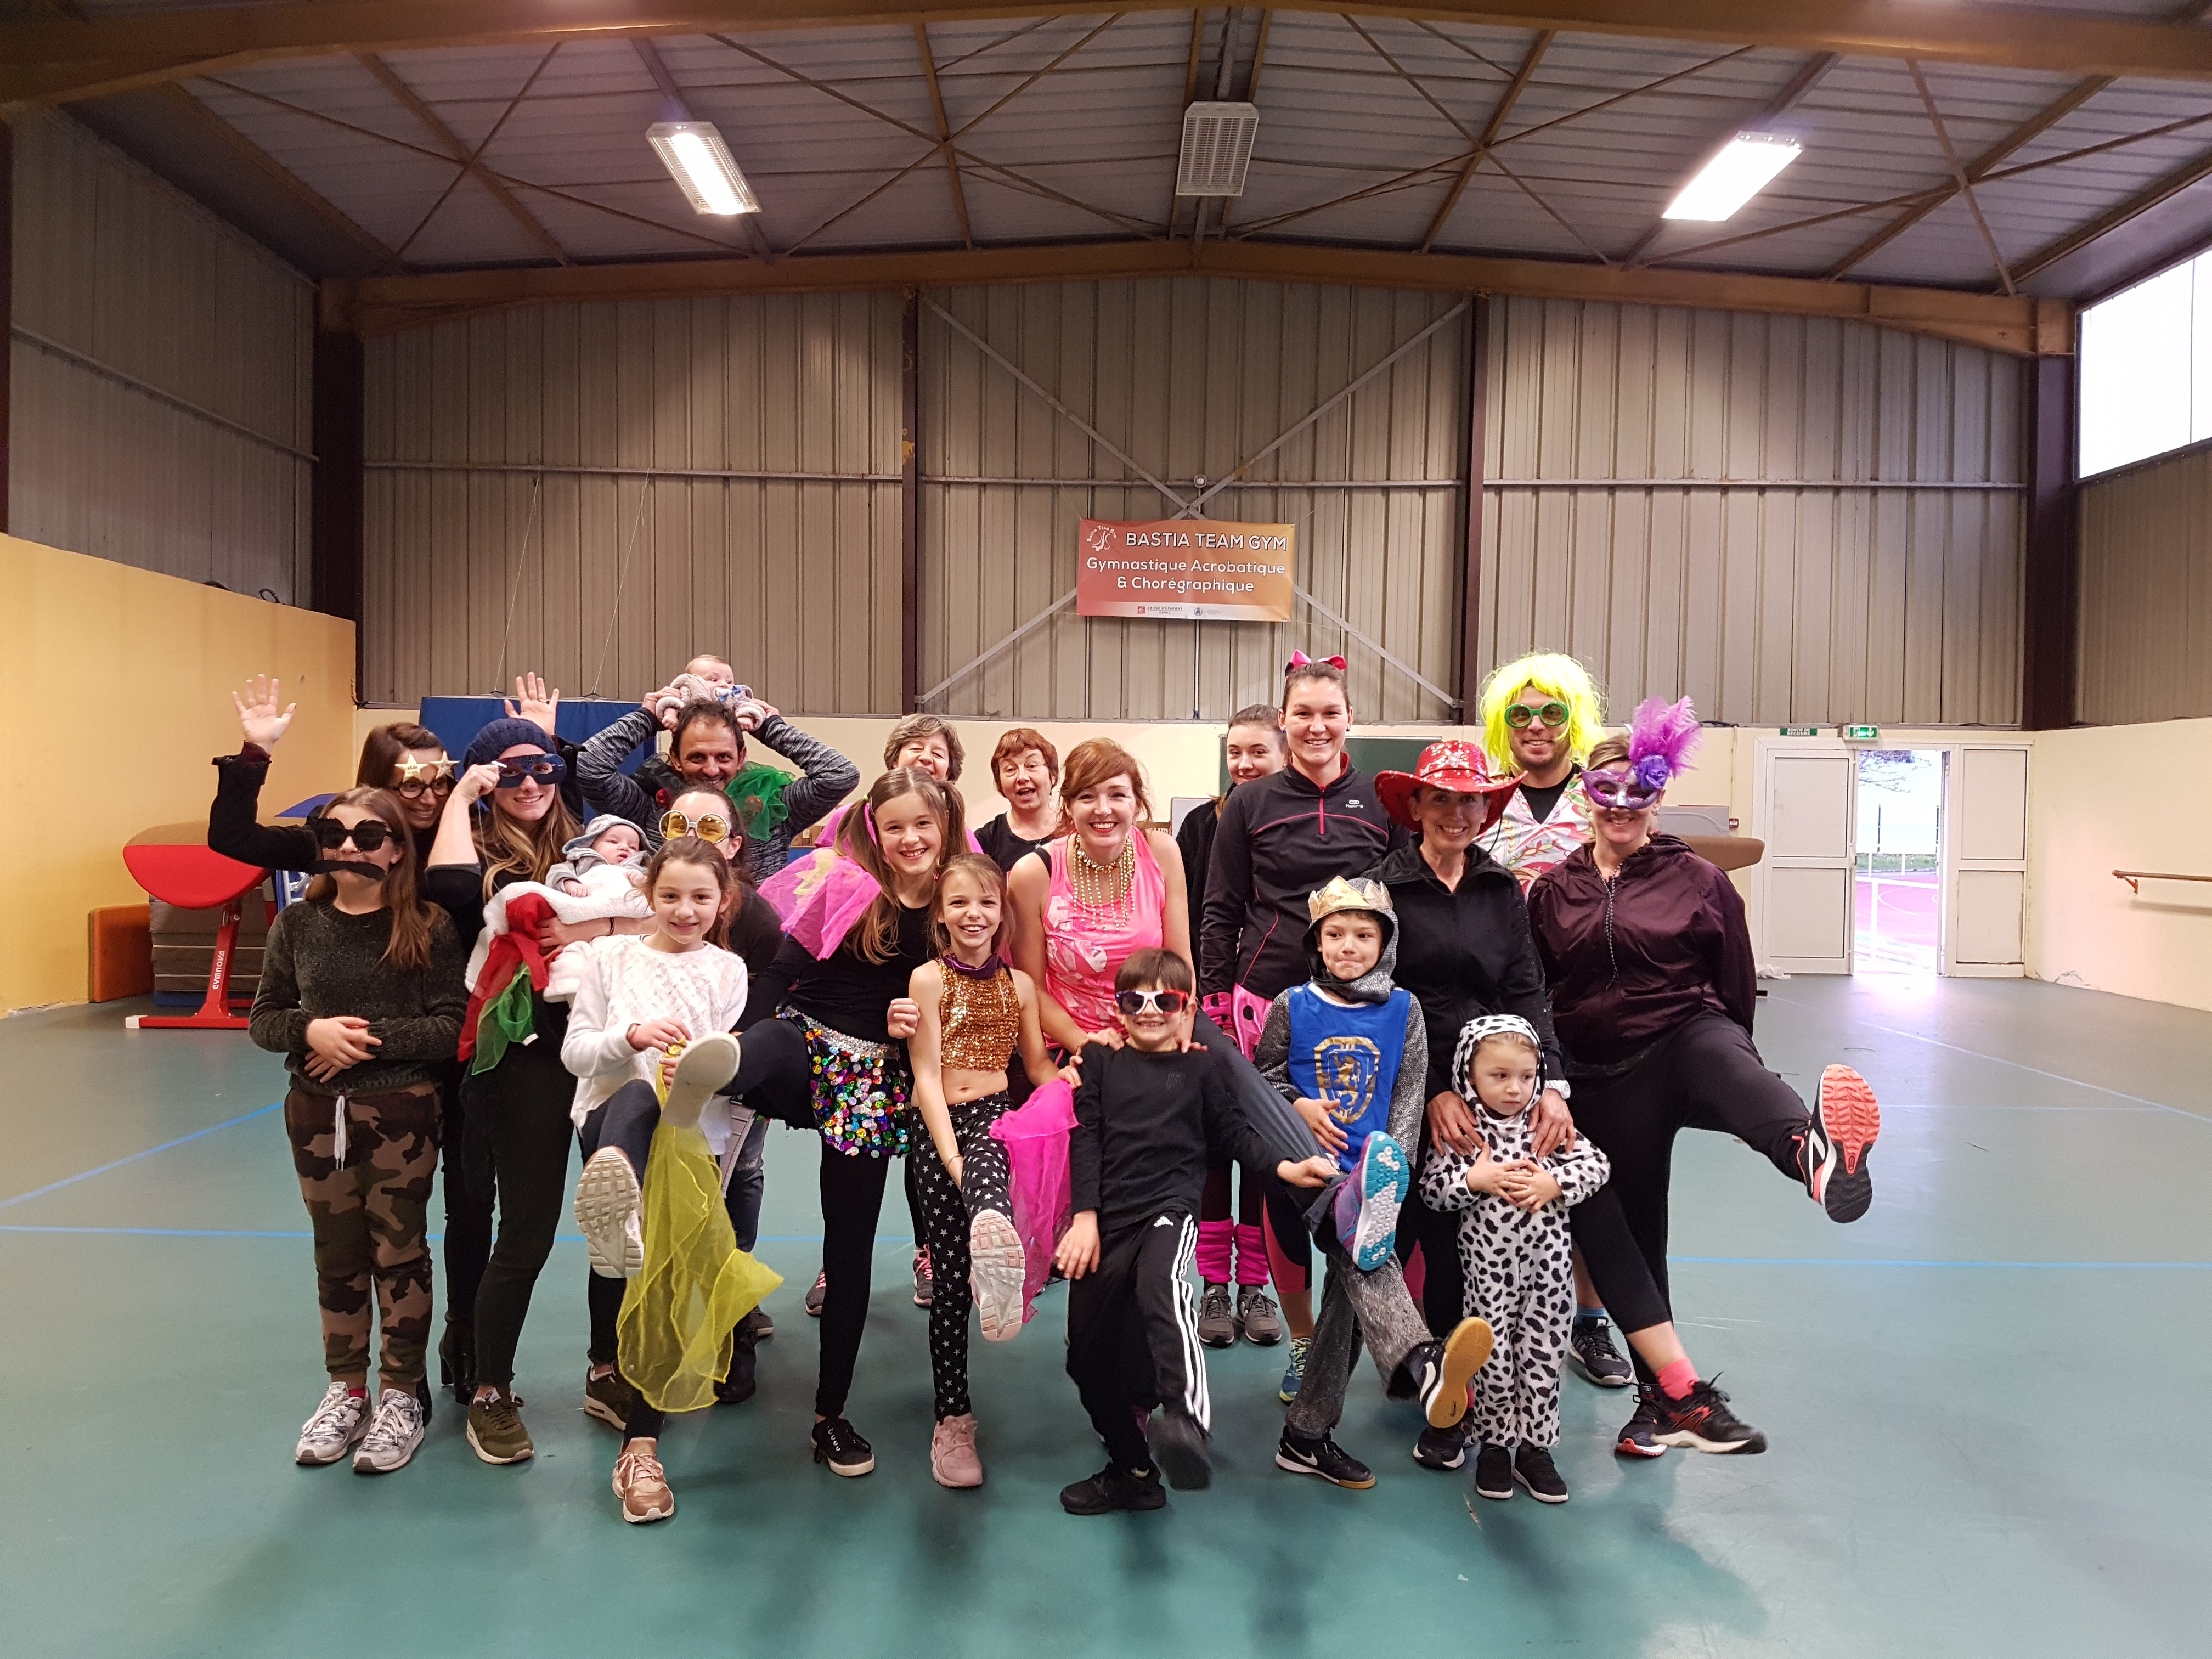 zumba party carnaval